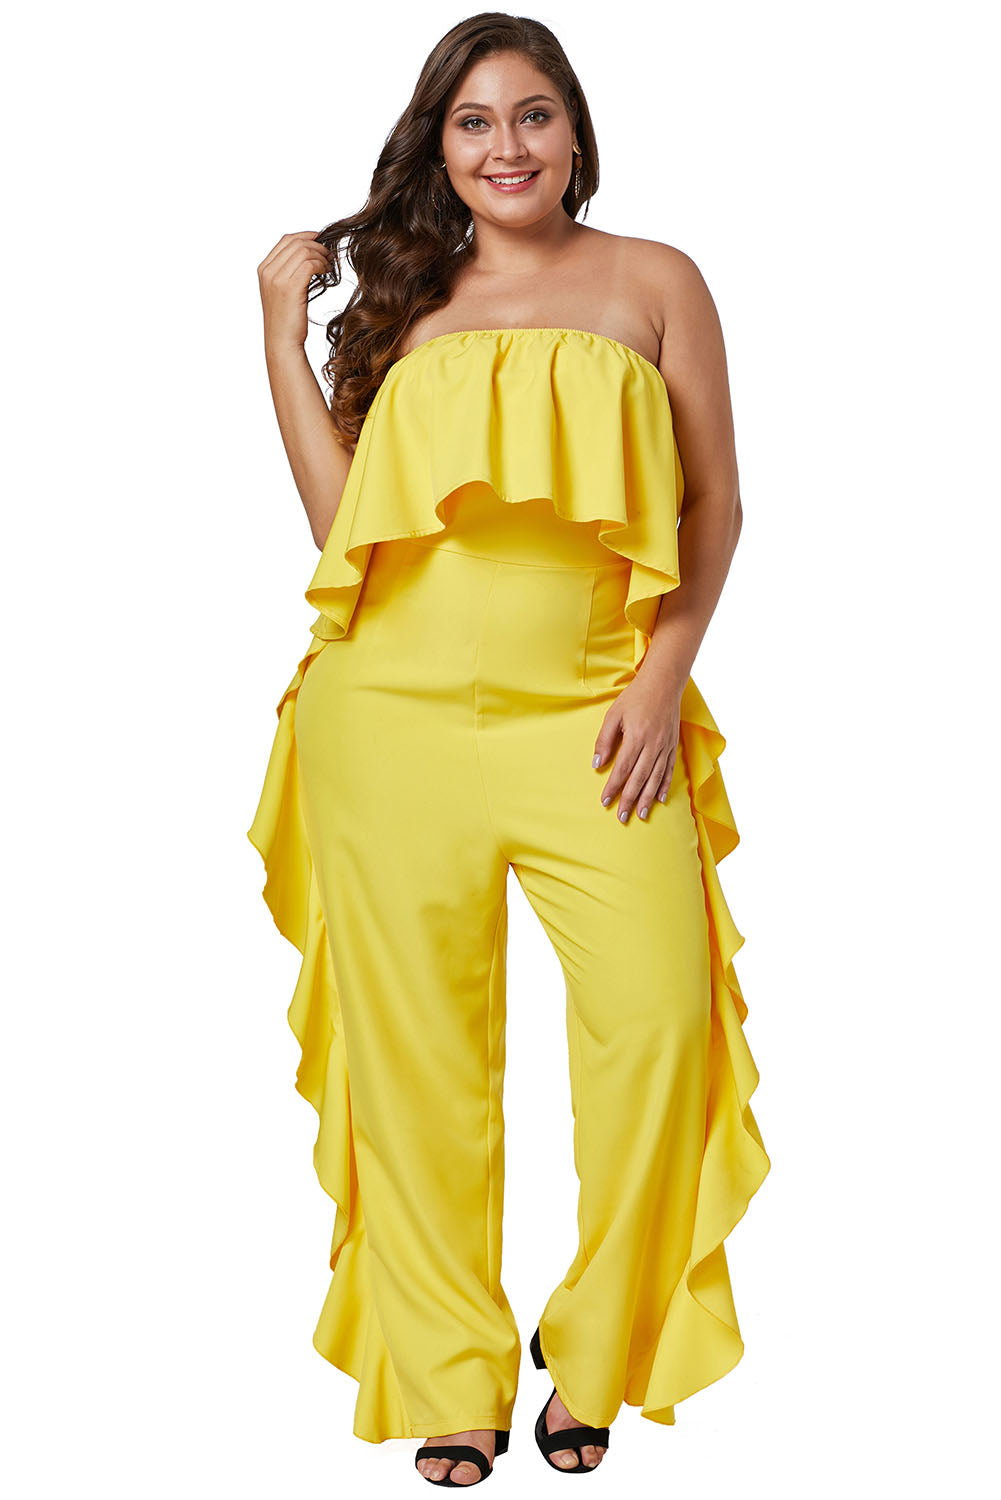 Yellow Prime Dreams Plus Size Strapless Ruffle Jumpsuit Plus Size Discount Designer Fashion Clothes Shoes Bags Women Men Kids Children Black Owned Business